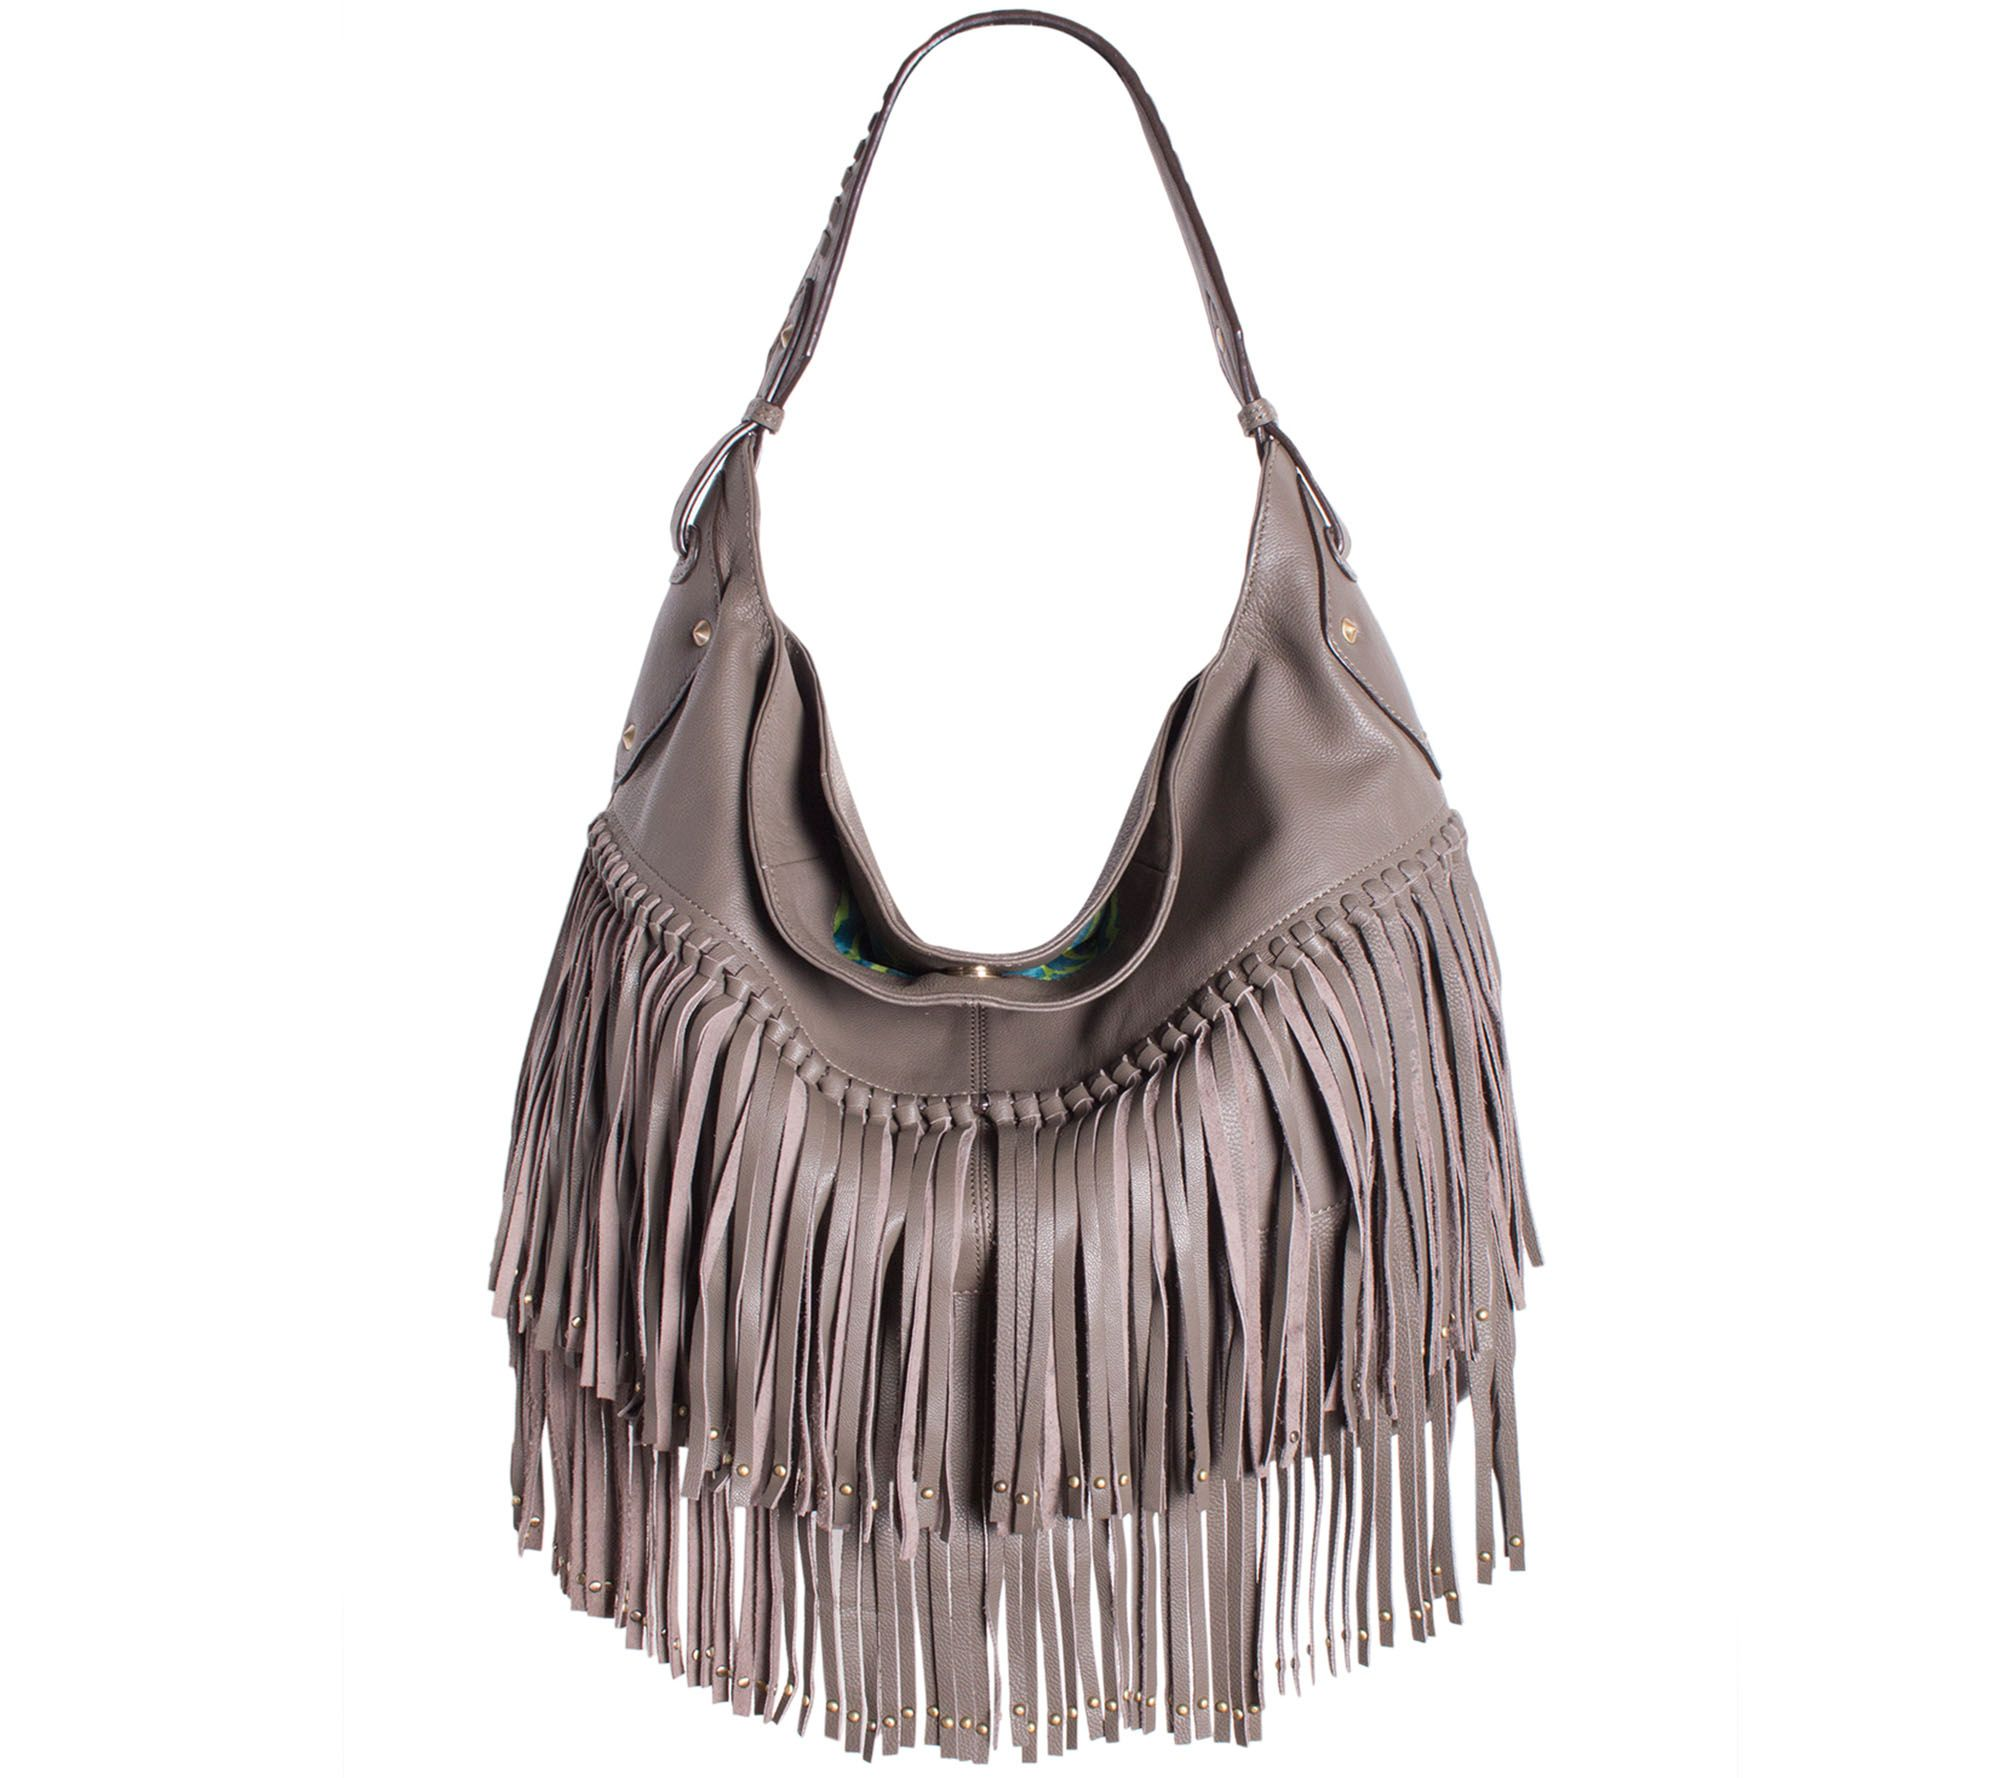 Well-liked orYANY Soft Nappa Leather Fringe Hobo - Stevie - Page 1 — QVC.com GH93